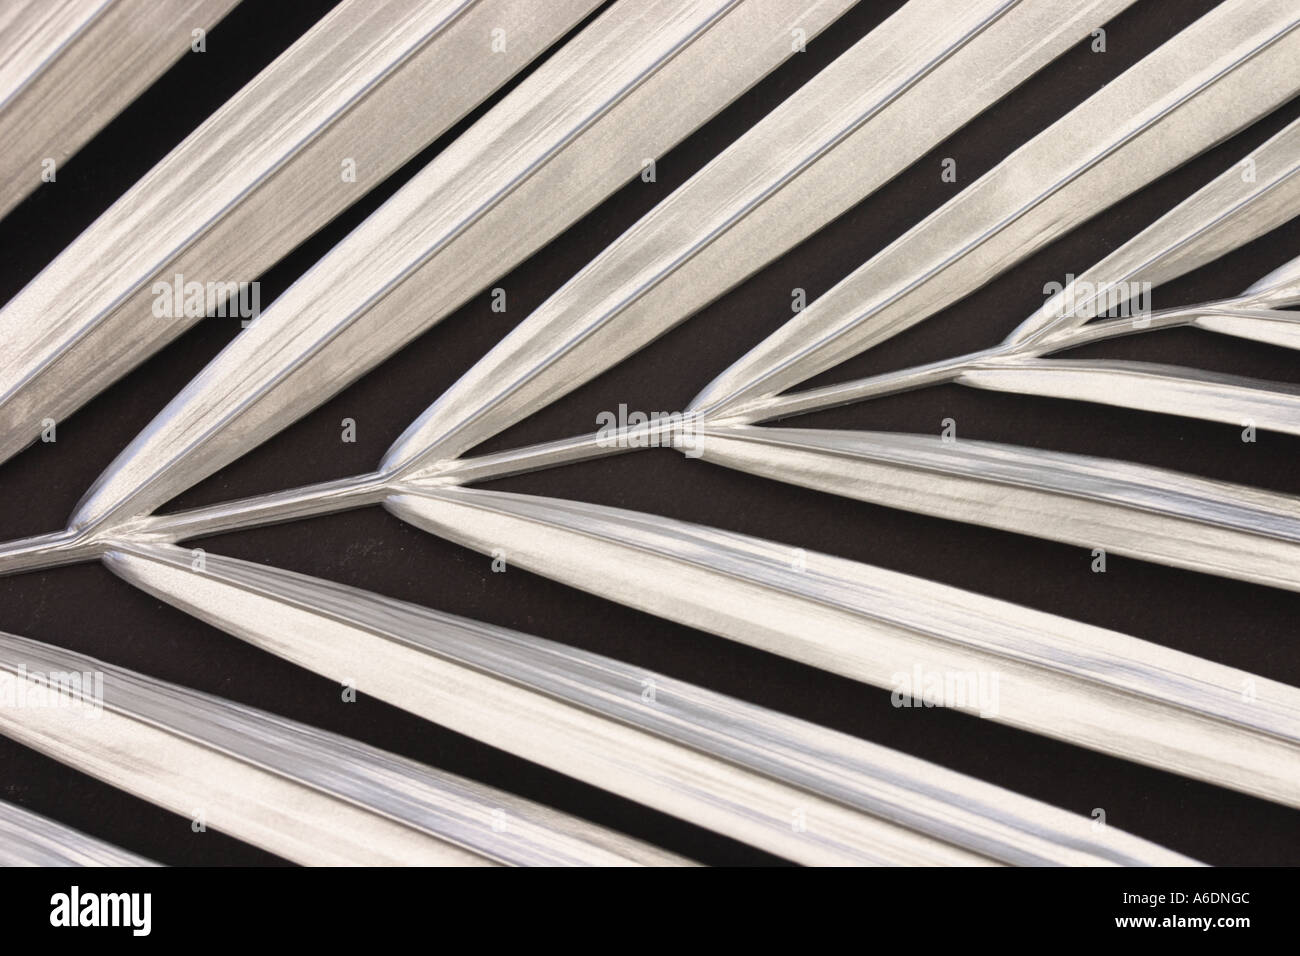 SILVER PALM FROND   BLACK BACKGROUND HORIZONTAL BAPDB5987 - Stock Image